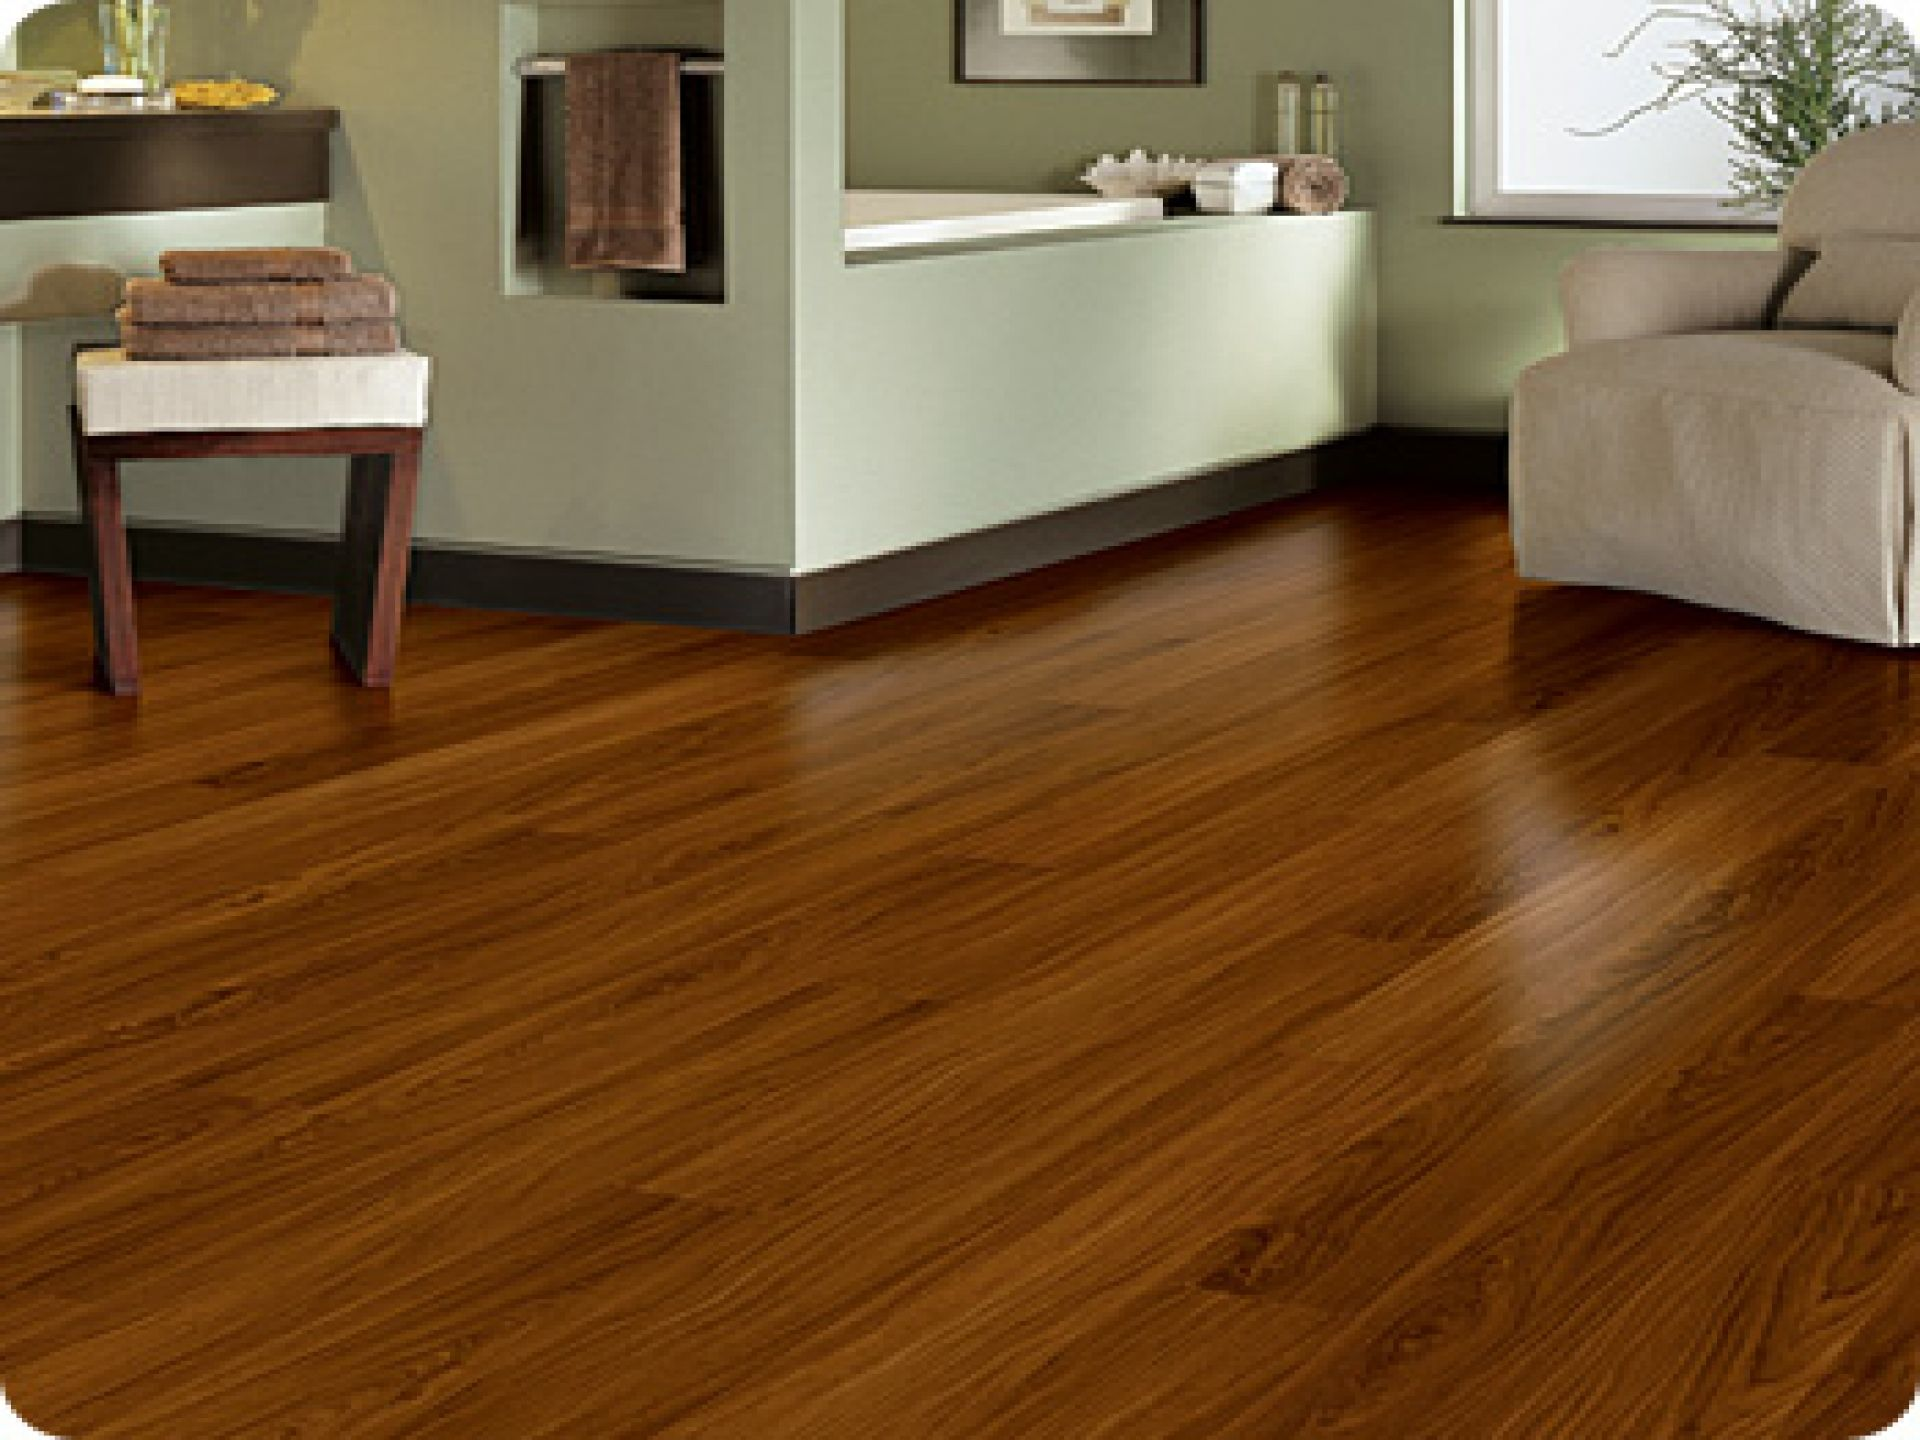 Bamboo Flooring Canberra Interesting Armstrong Exquisite Vinyl Plank Flooring